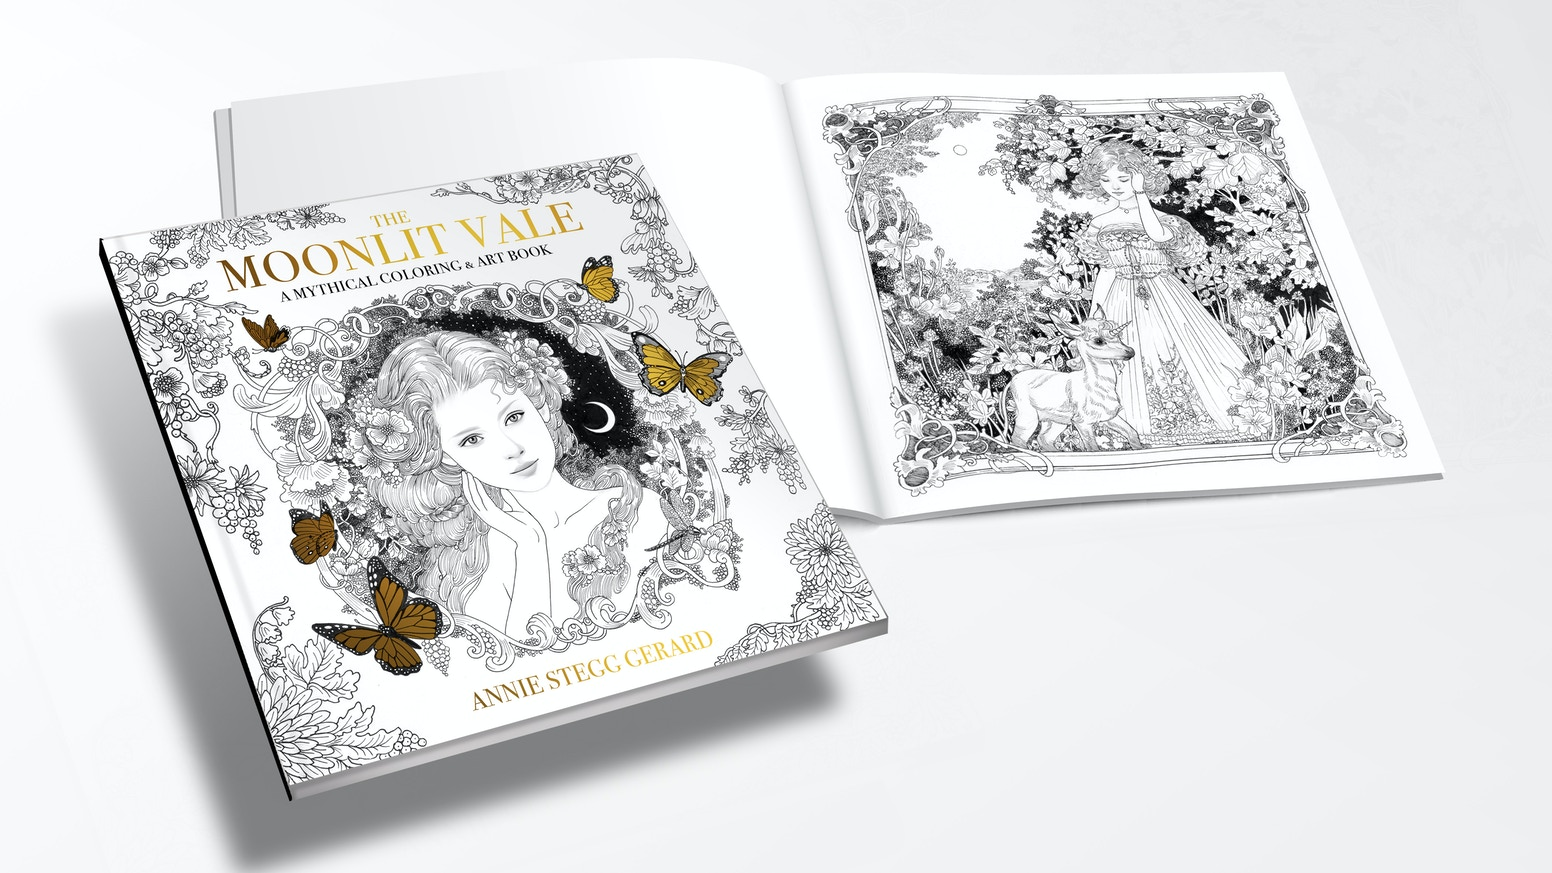 Relax and share in the meditative quality of art, through this enchanted coloring book.